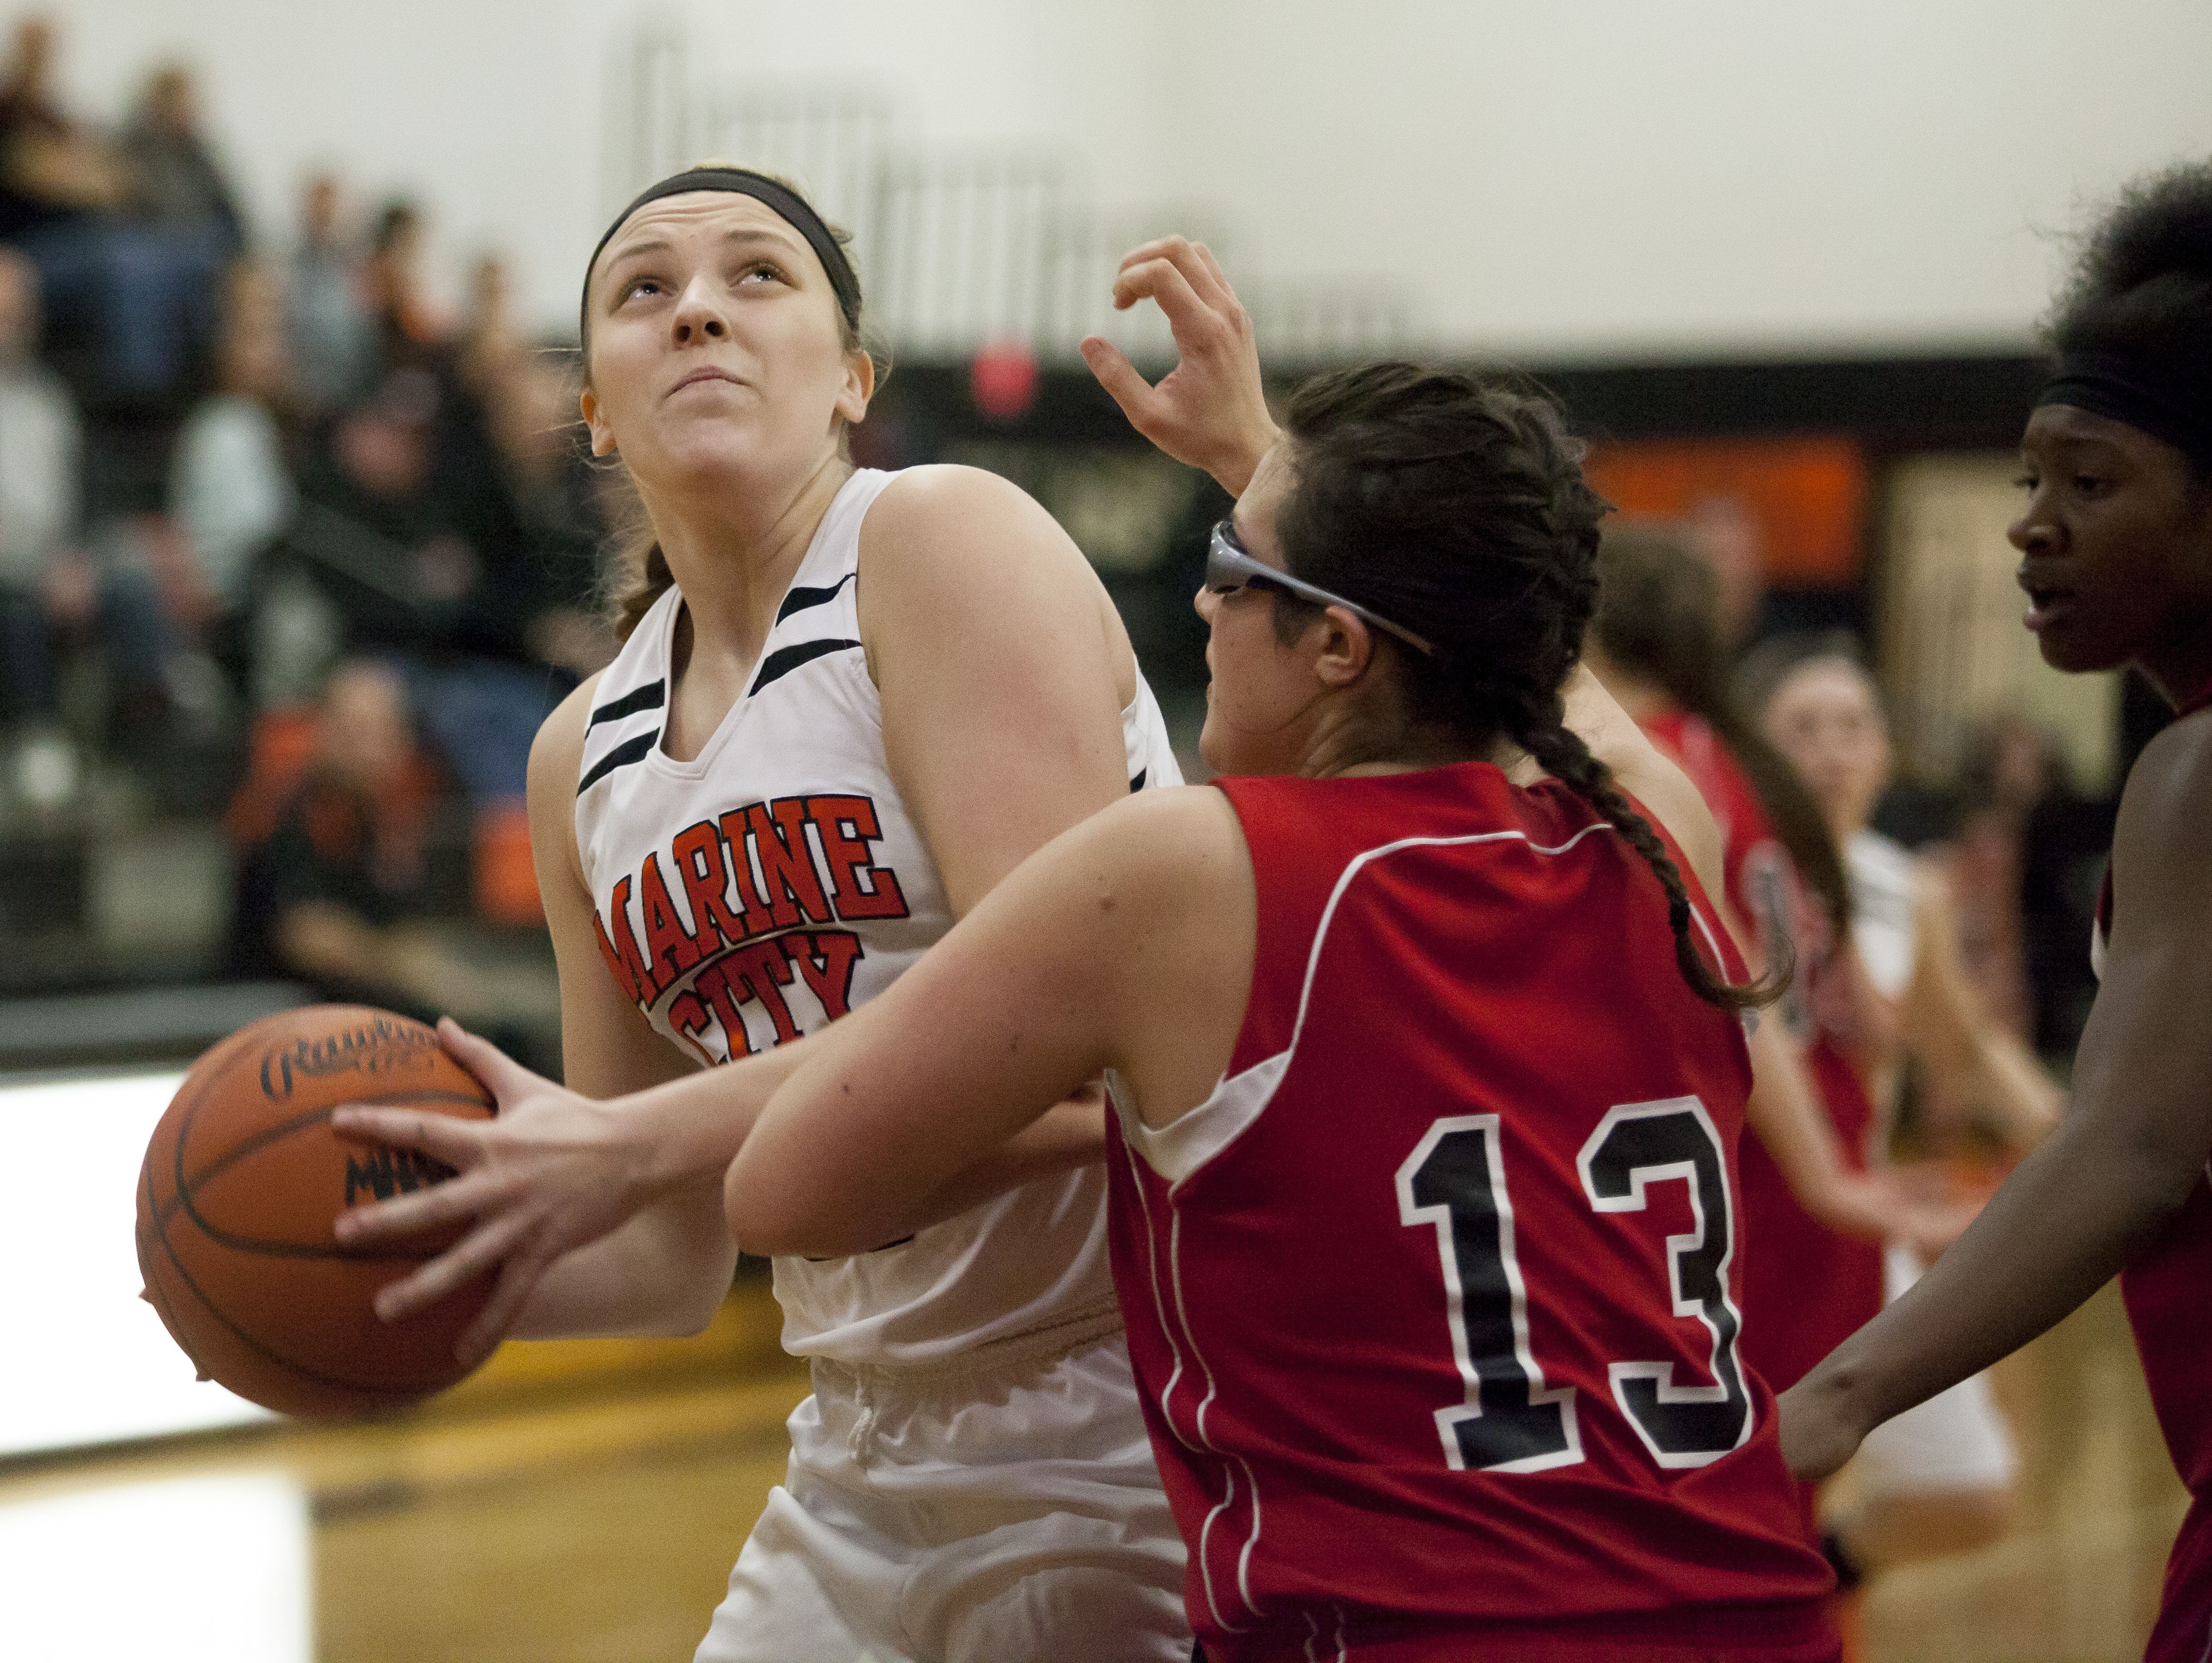 Marine City junior Paige Tranchida goes for a shot during a basketball game Thursday, Jan. 14, 2016 at Marine City High School.